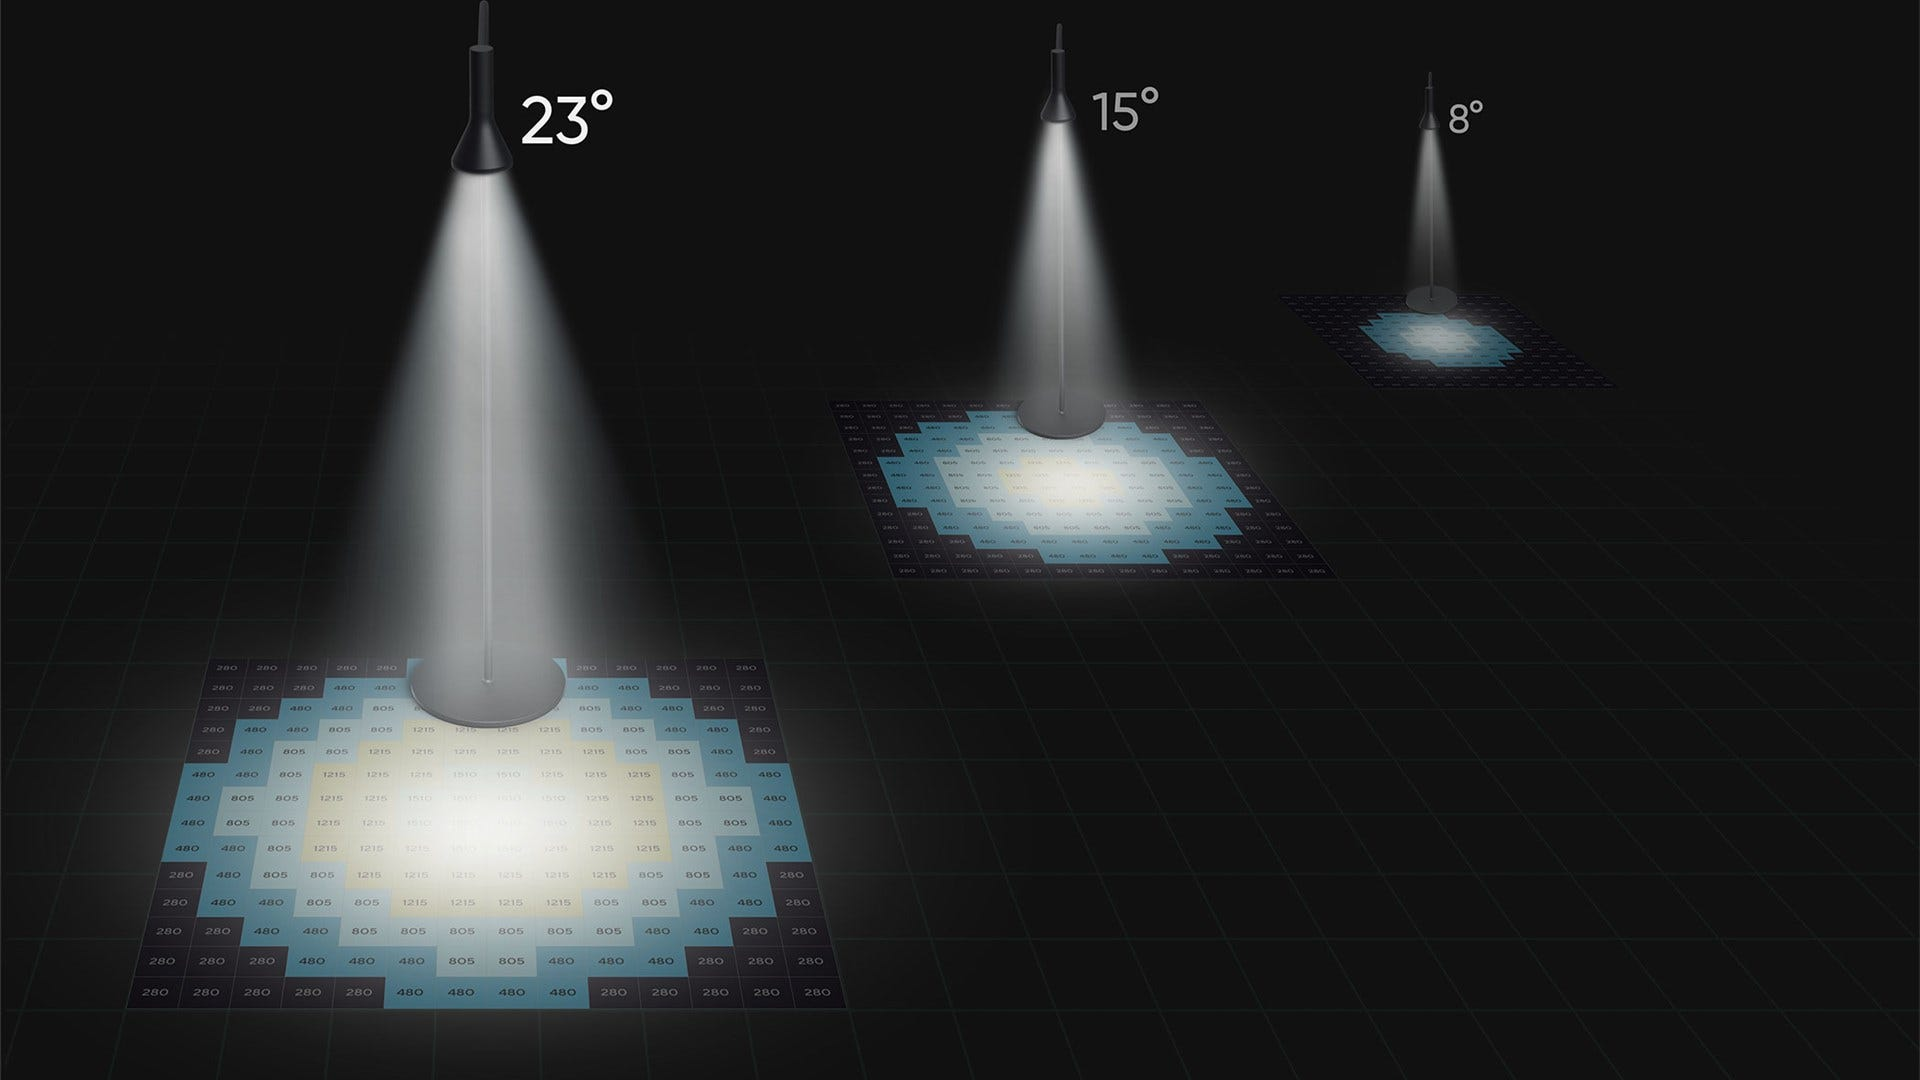 An image highlighting the spread of light at various brightness levels